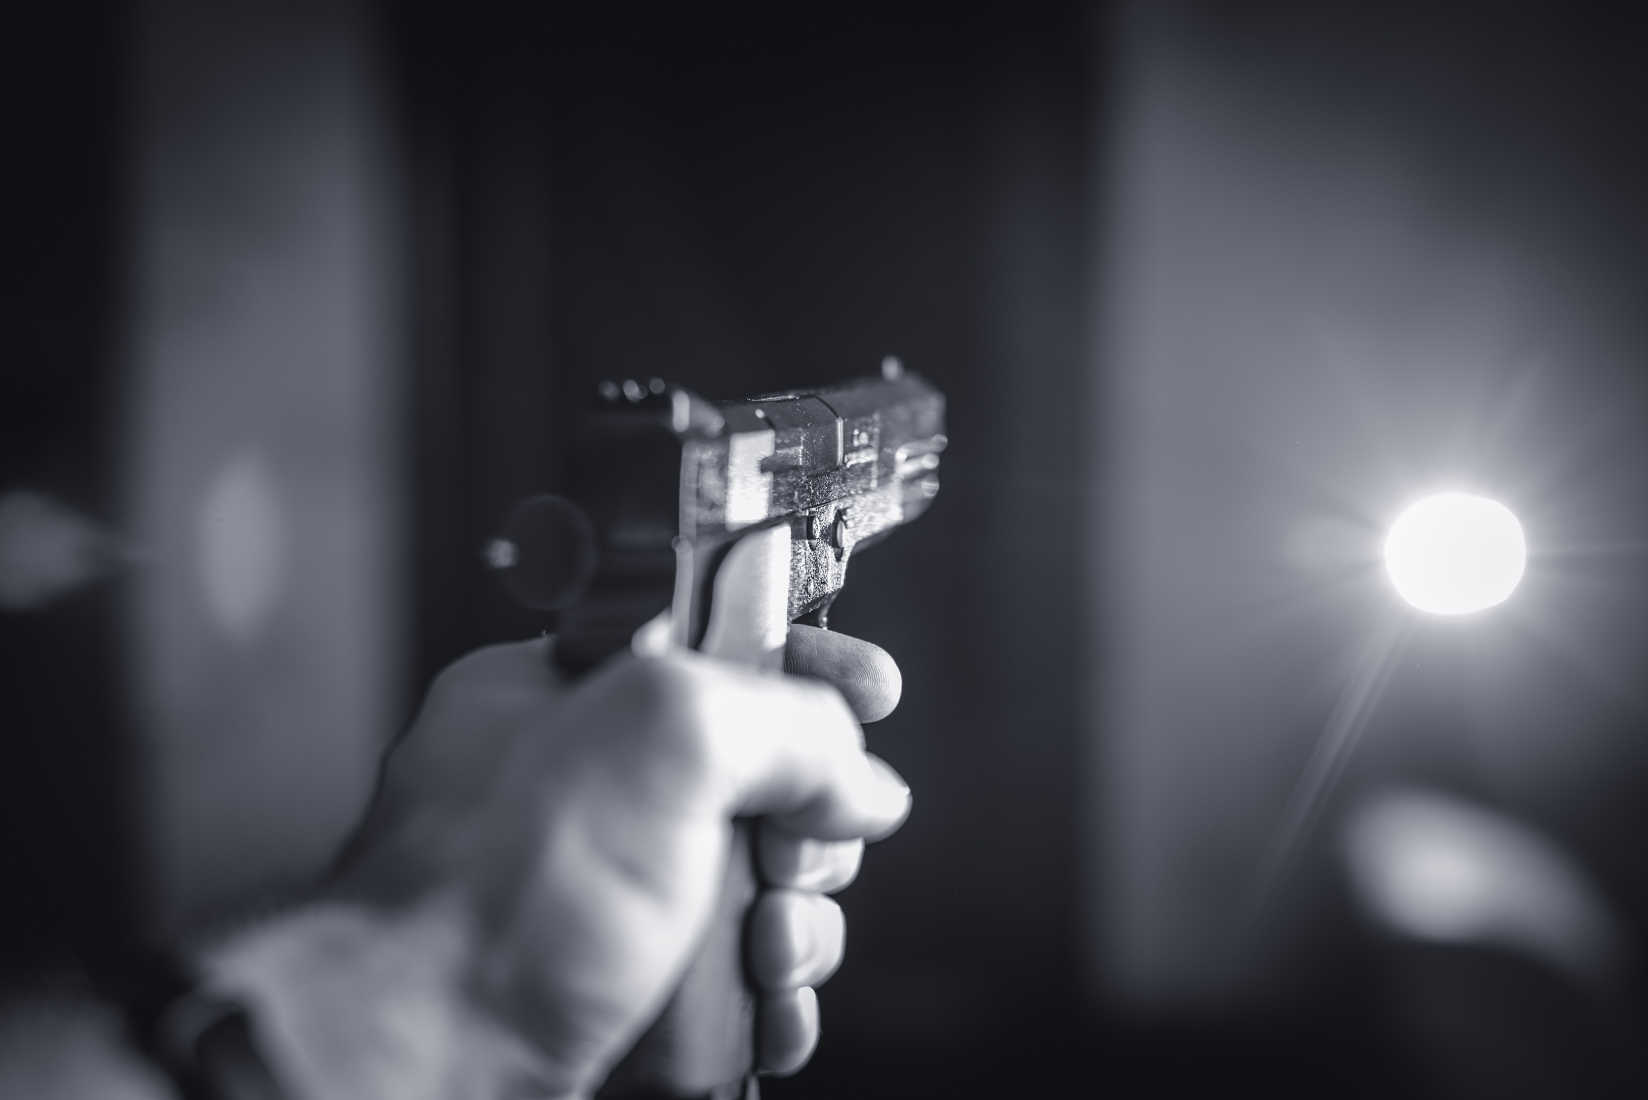 'Granny Jean' Shoots Intruder Who Took His Pants Off in Her Home